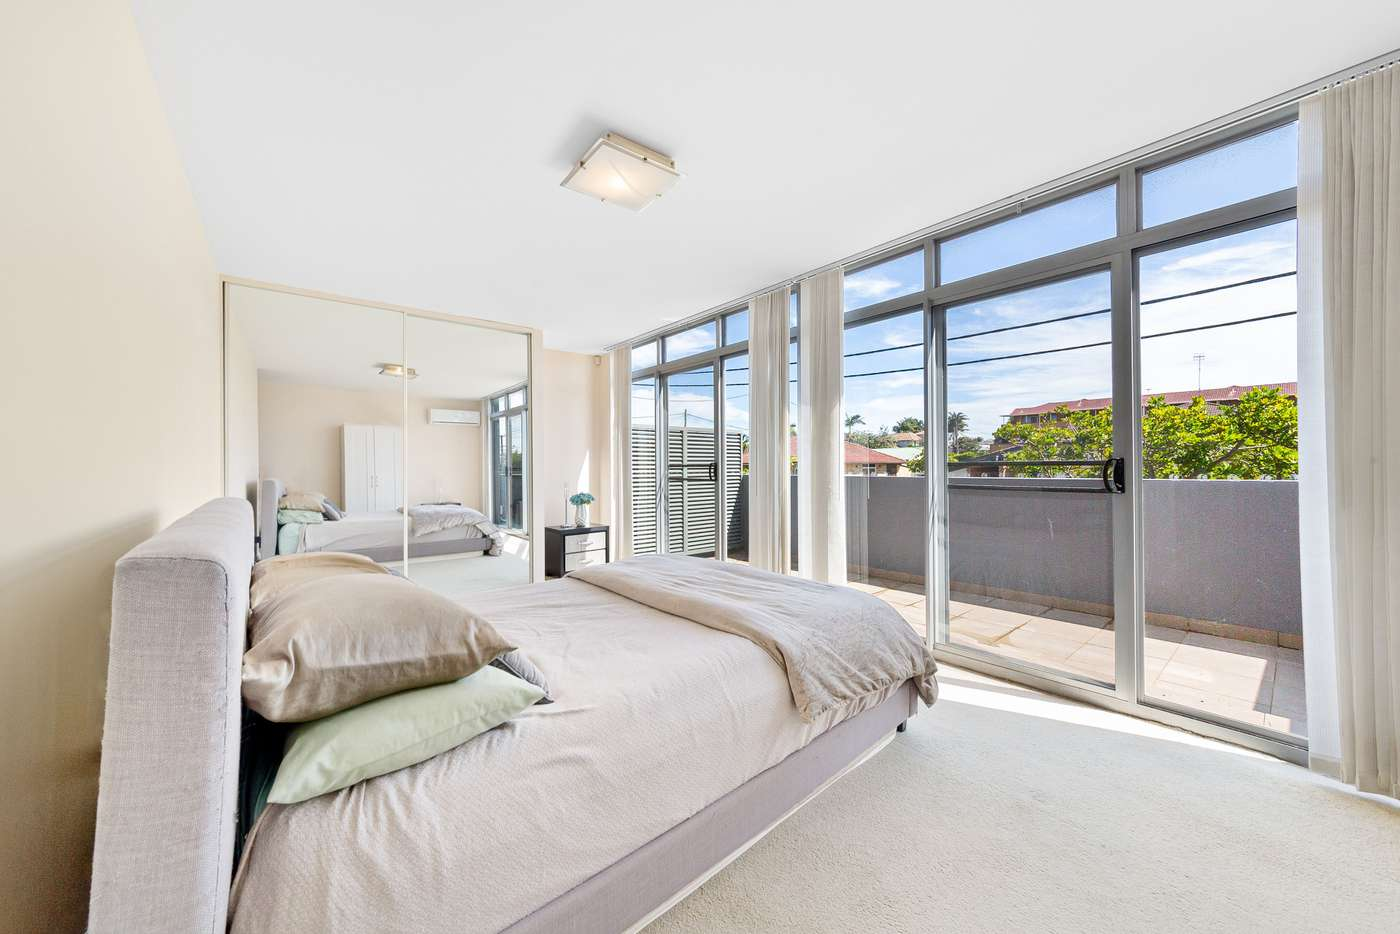 Fifth view of Homely house listing, 5/2-6 Warrigal Street, The Entrance NSW 2261